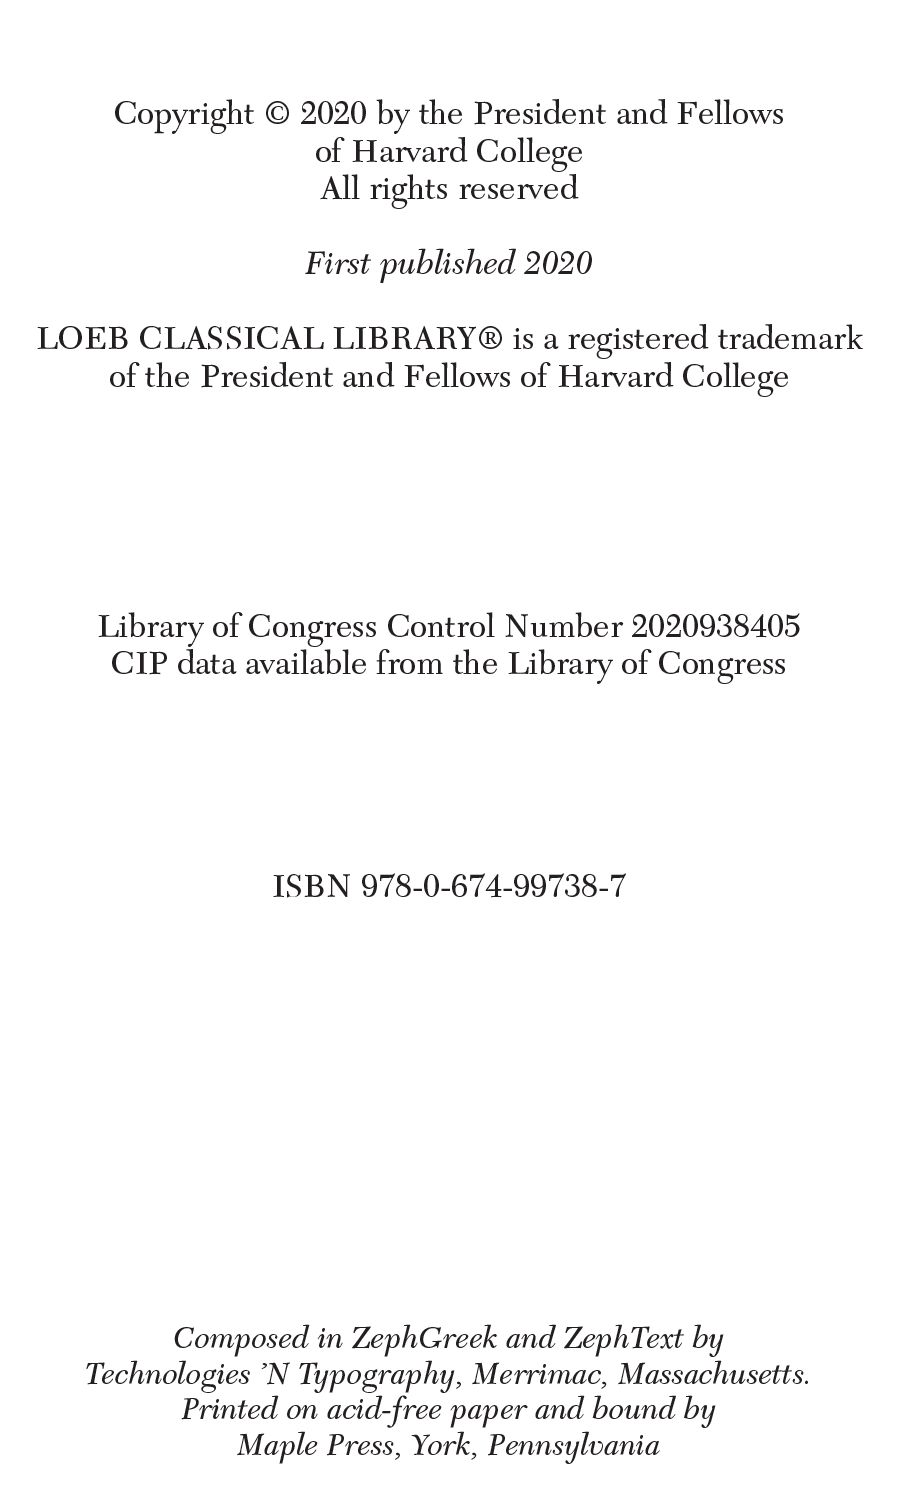 Copyright © 2020 by the President and Fellows of Harvard College All rights reserved  First published 2020  LOEB CLASSICAL LIBRARY® is a registered trademark of the President and Fellows of Harvard College Library of Congress Control Number 2020938405 CIP data available from the Library of Congress ISBN 978-0-674-99738-7 Composed in ZephGreek and ZephText by Technologies 'N Typography, Merrimac, Massachusetts. Printed on acid-free paper and bound by Maple Press, York, Pennsylvania